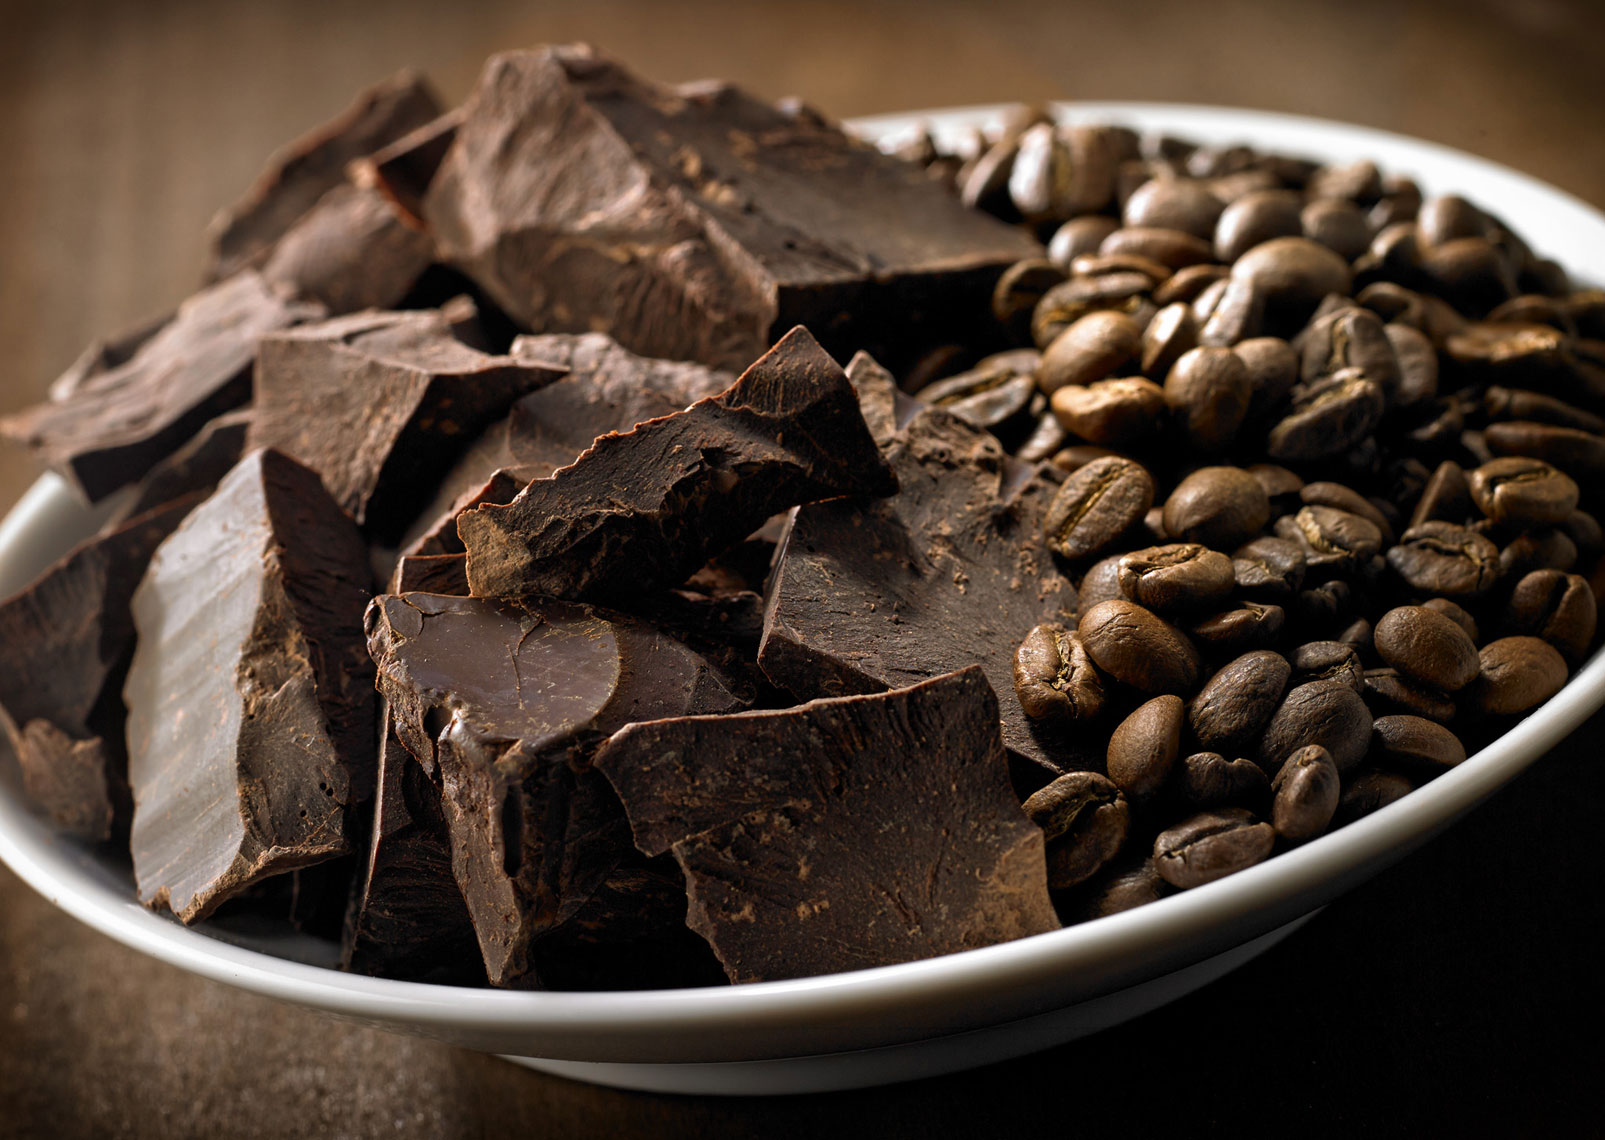 Broken Pieces/dark chocolate /coffee beans/white bowl/food photography